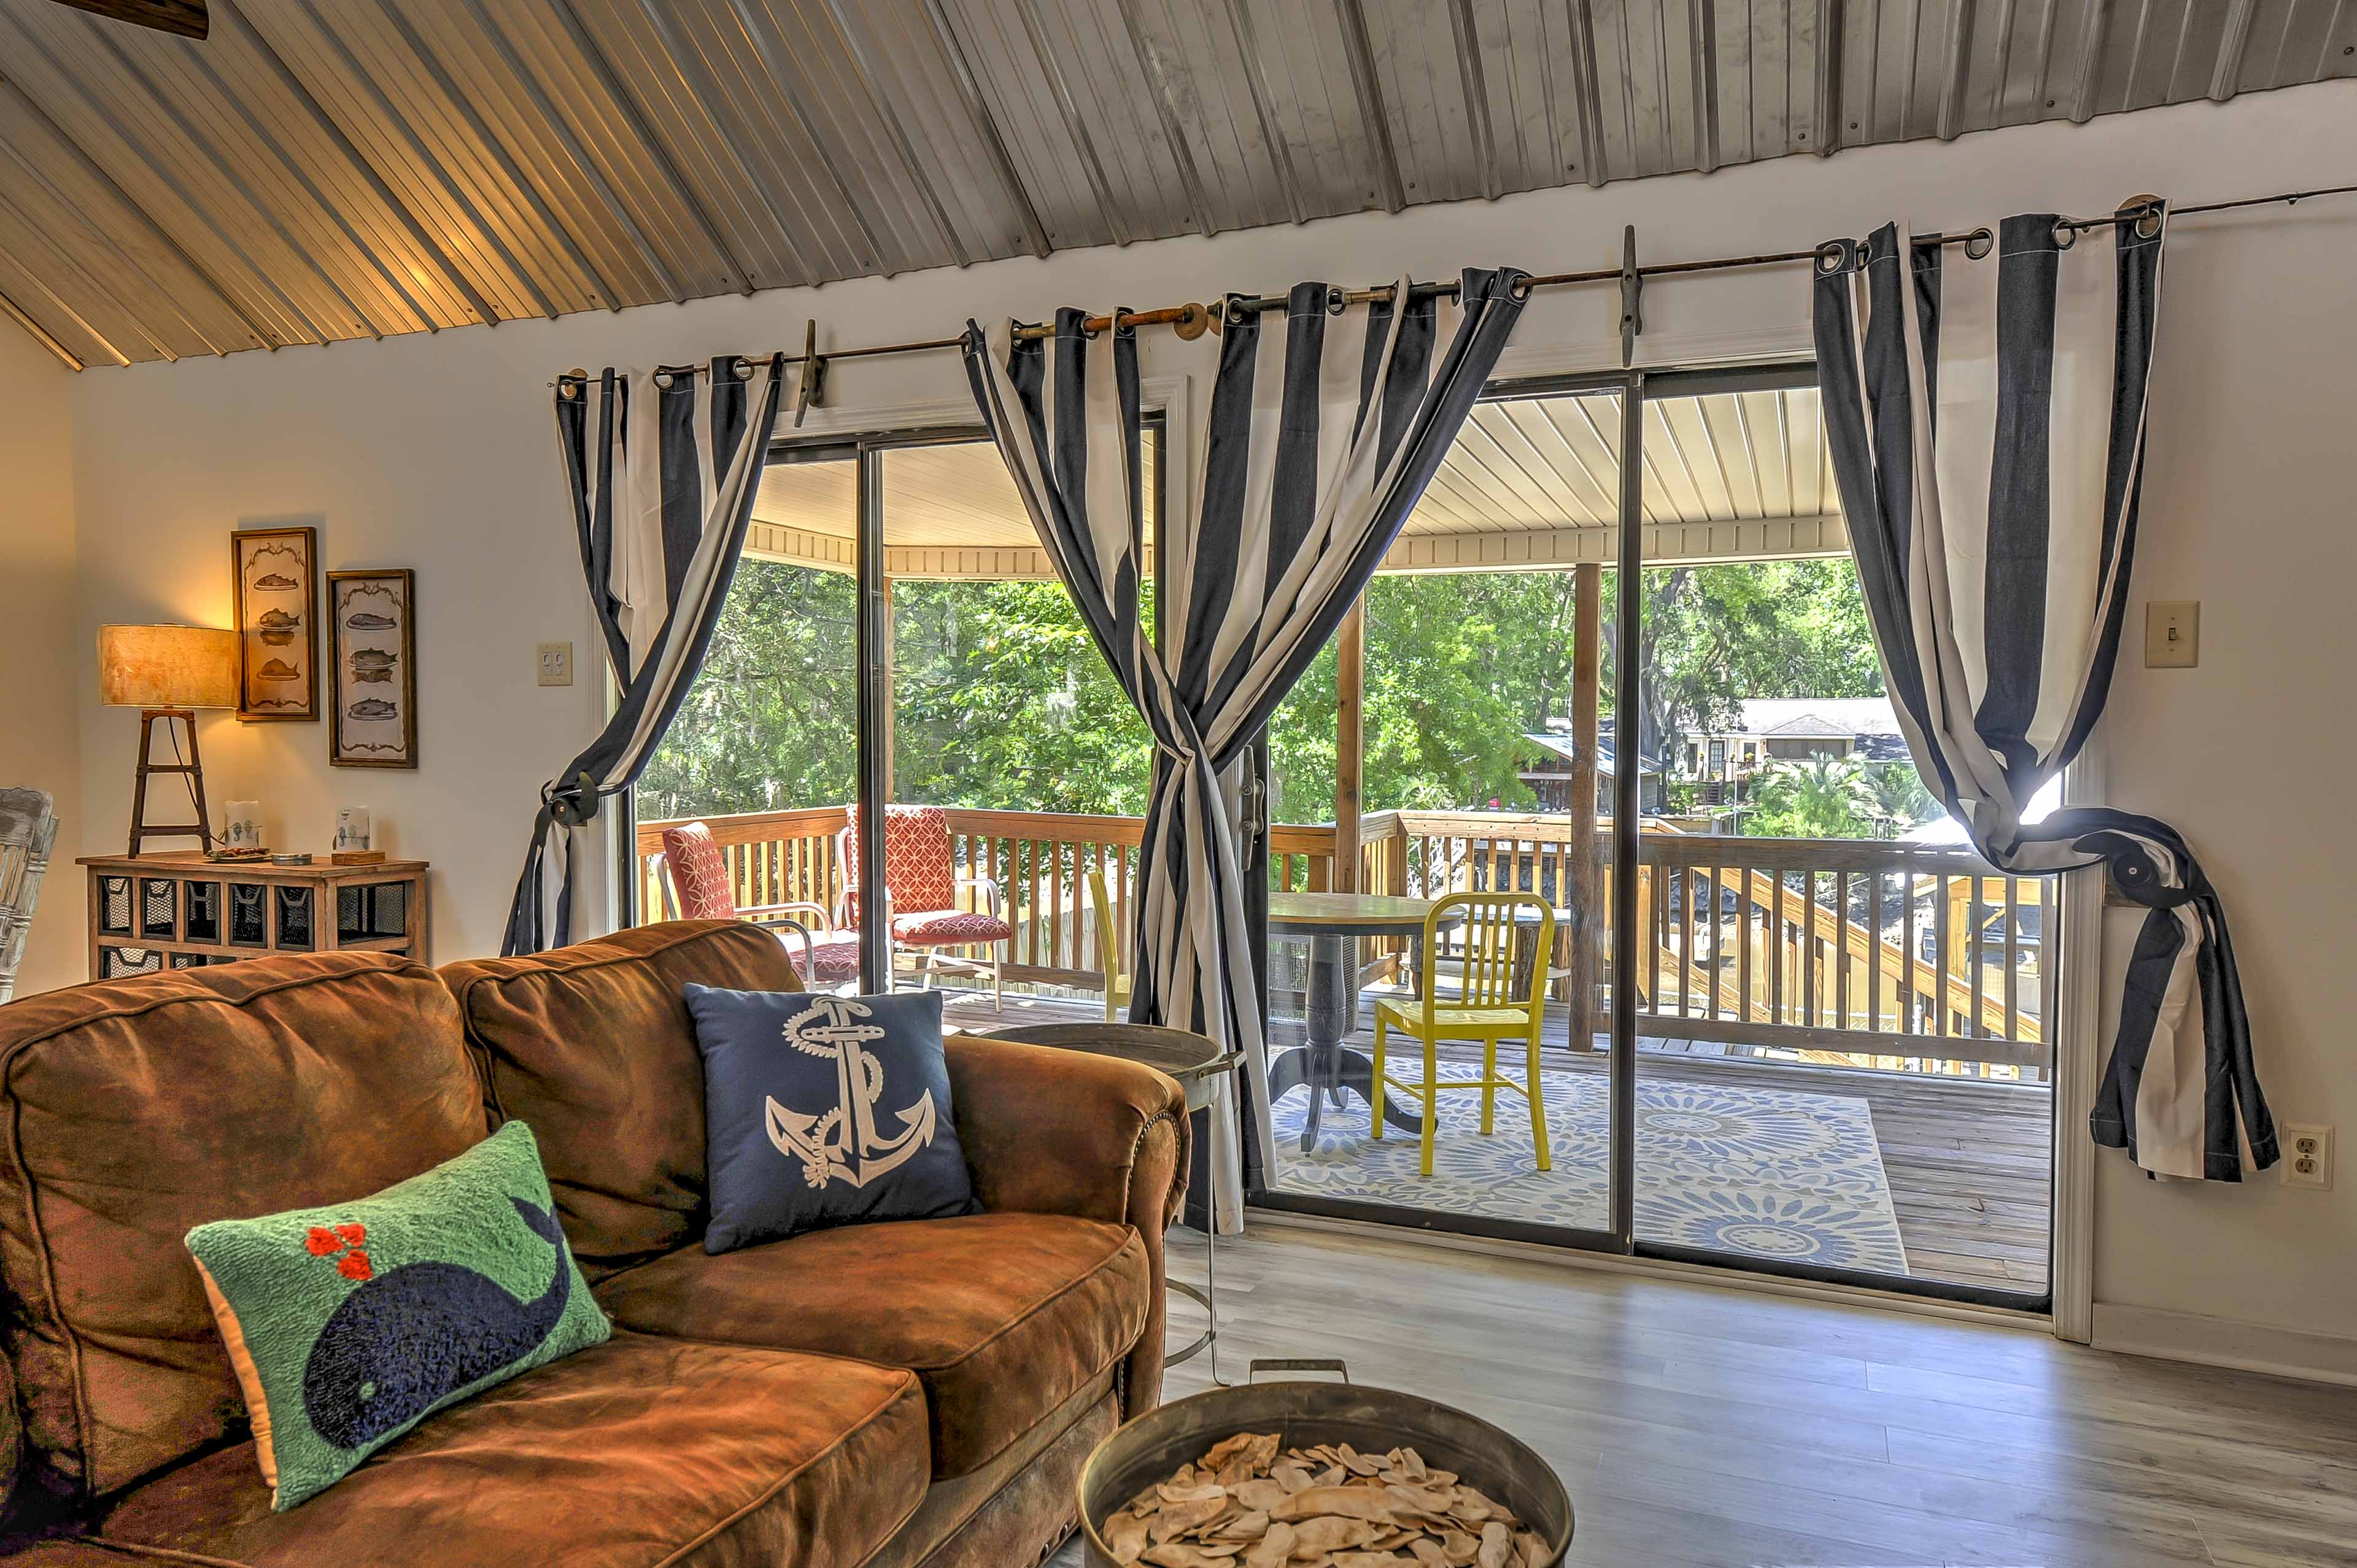 Gorgeous views can be enjoyed from both inside or out.